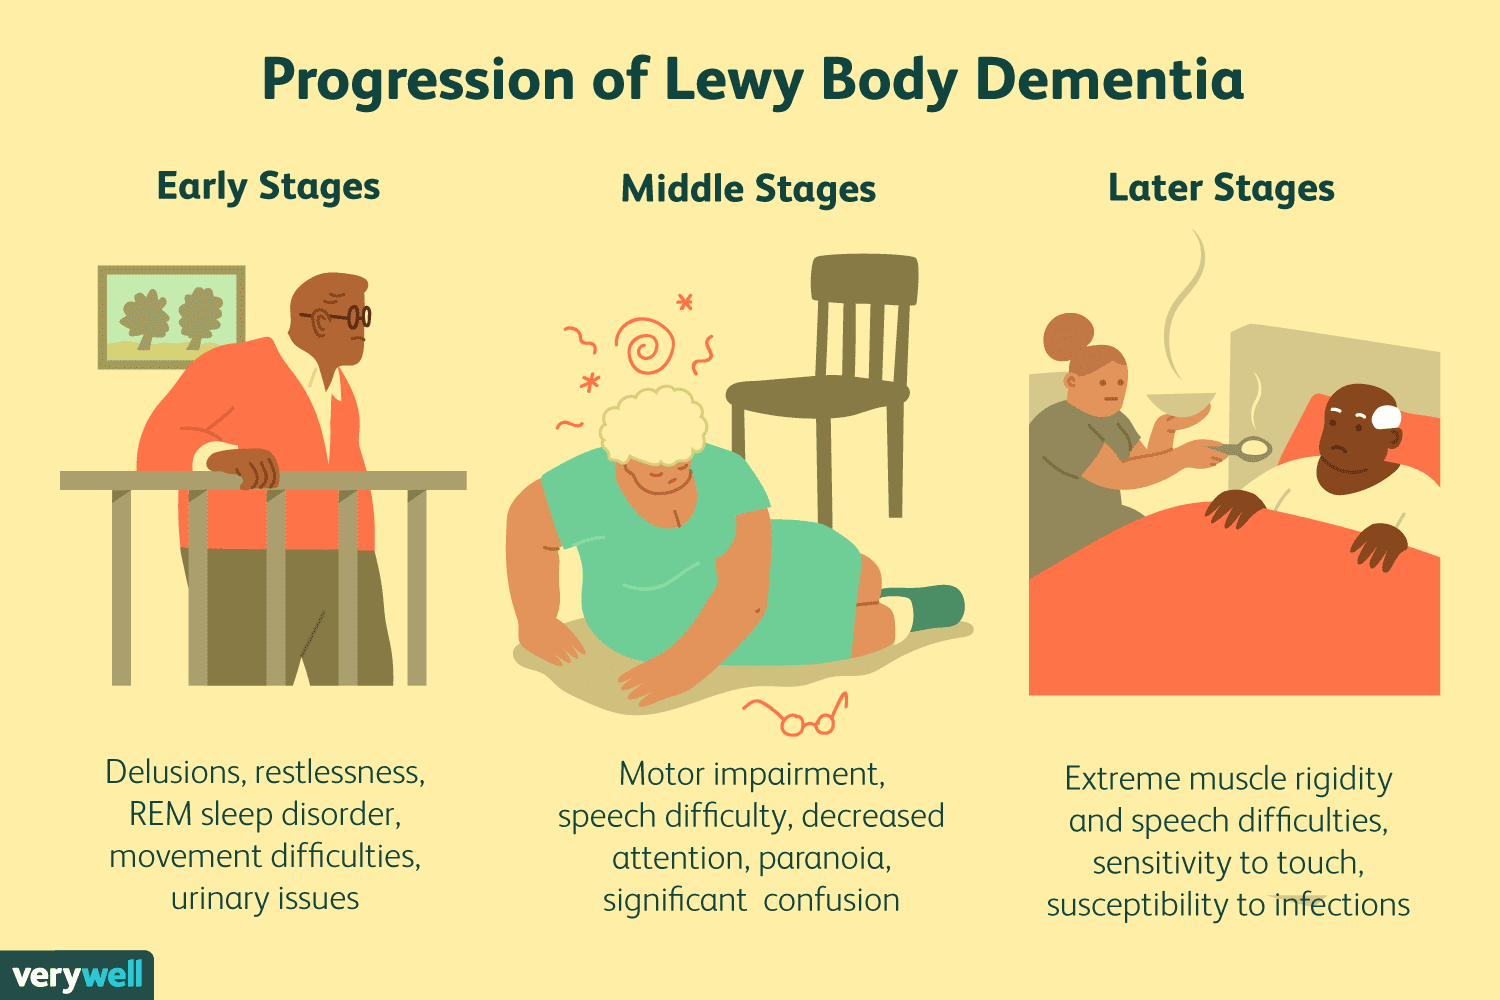 Stages and Progression of Lewy Body Dementia